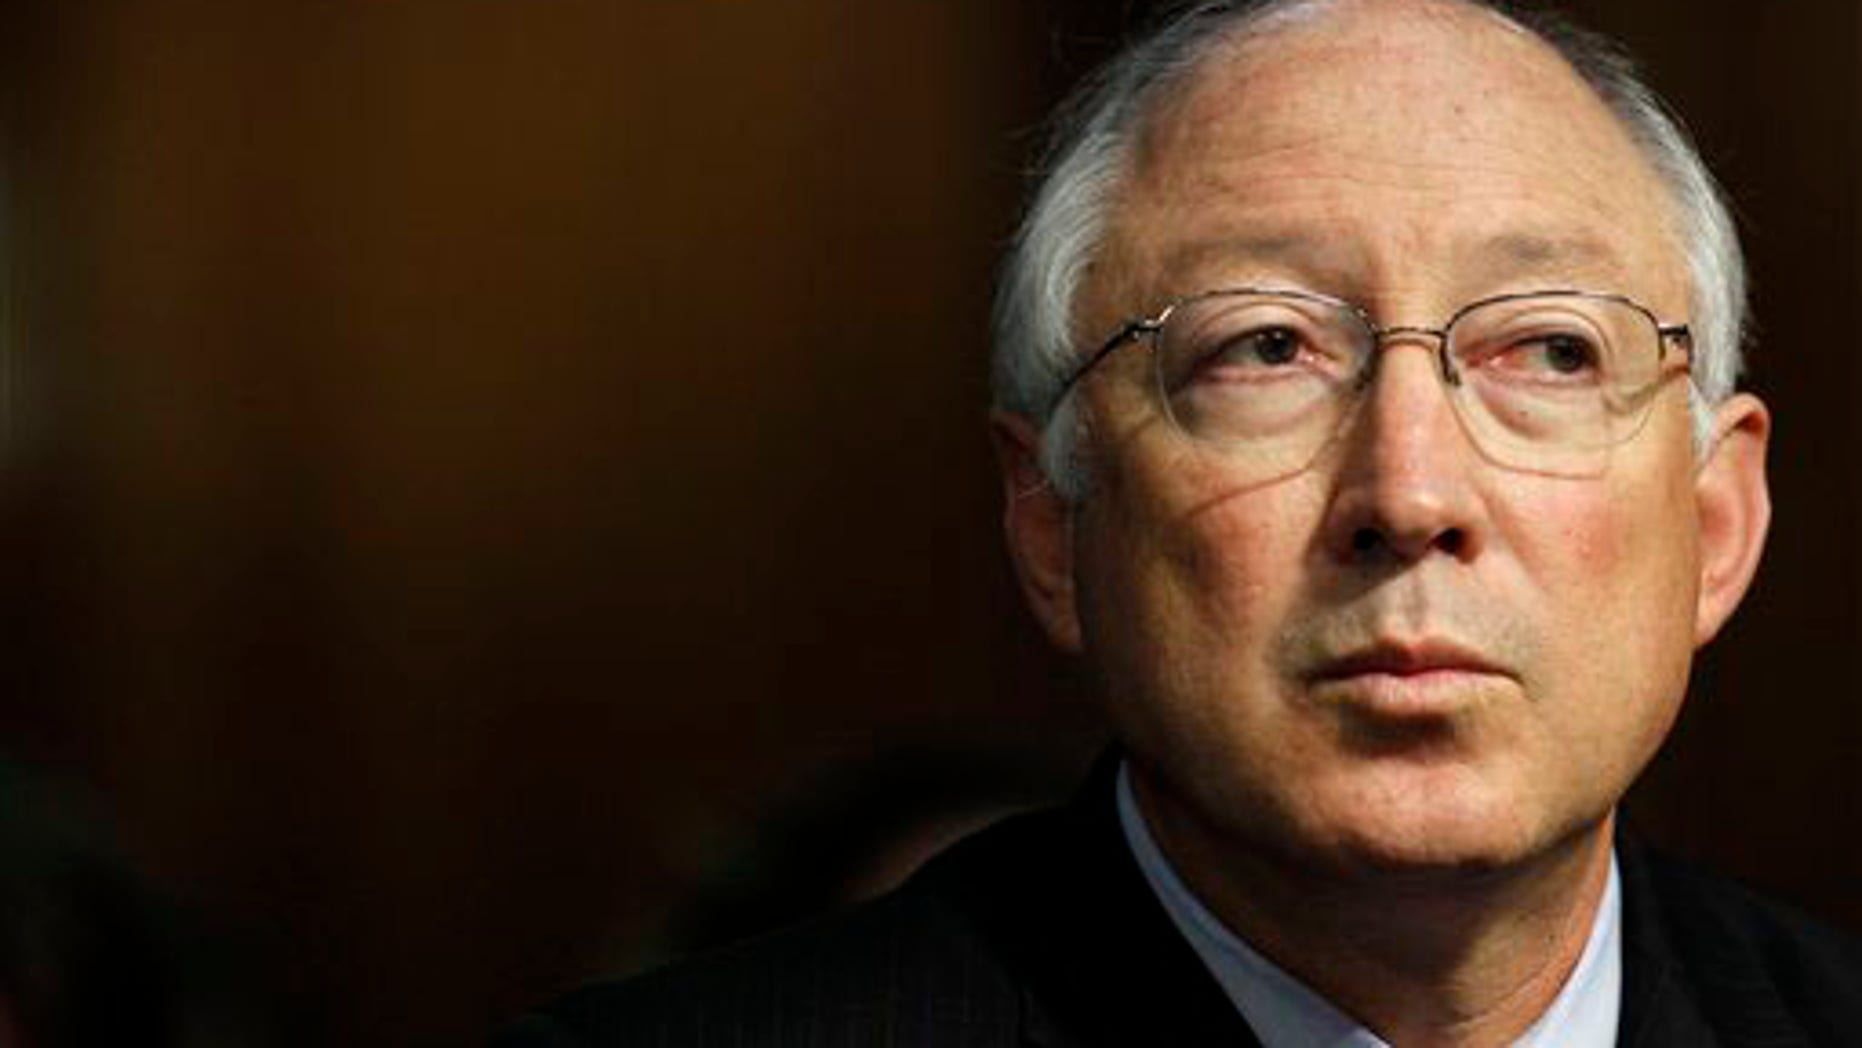 June 23, 2010: Interior Secretary Ken Salazar testifies on Capitol Hill before the Senate Interior, Environment, and Related Agencies subcommittee hearing on the reorganization of the Minerals Management Service. (AP)